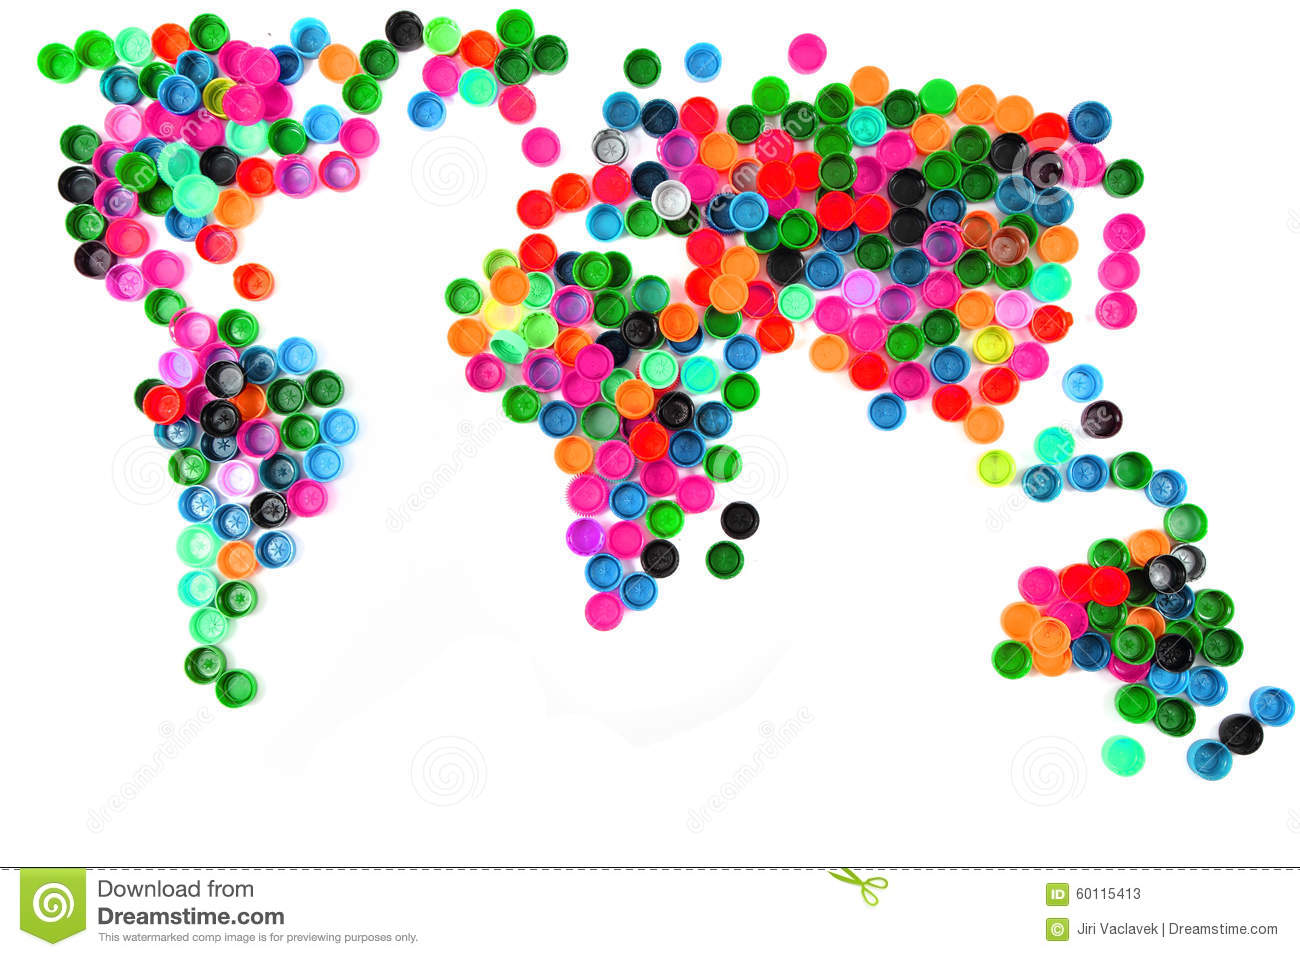 World Map From Plastic Caps Stock Image - Image of world ... on helmet map, franz ferdinand map, bob dylan map, queen map, maroon 5 map, michael jackson map, elvis presley map, oasis map, bleach map,